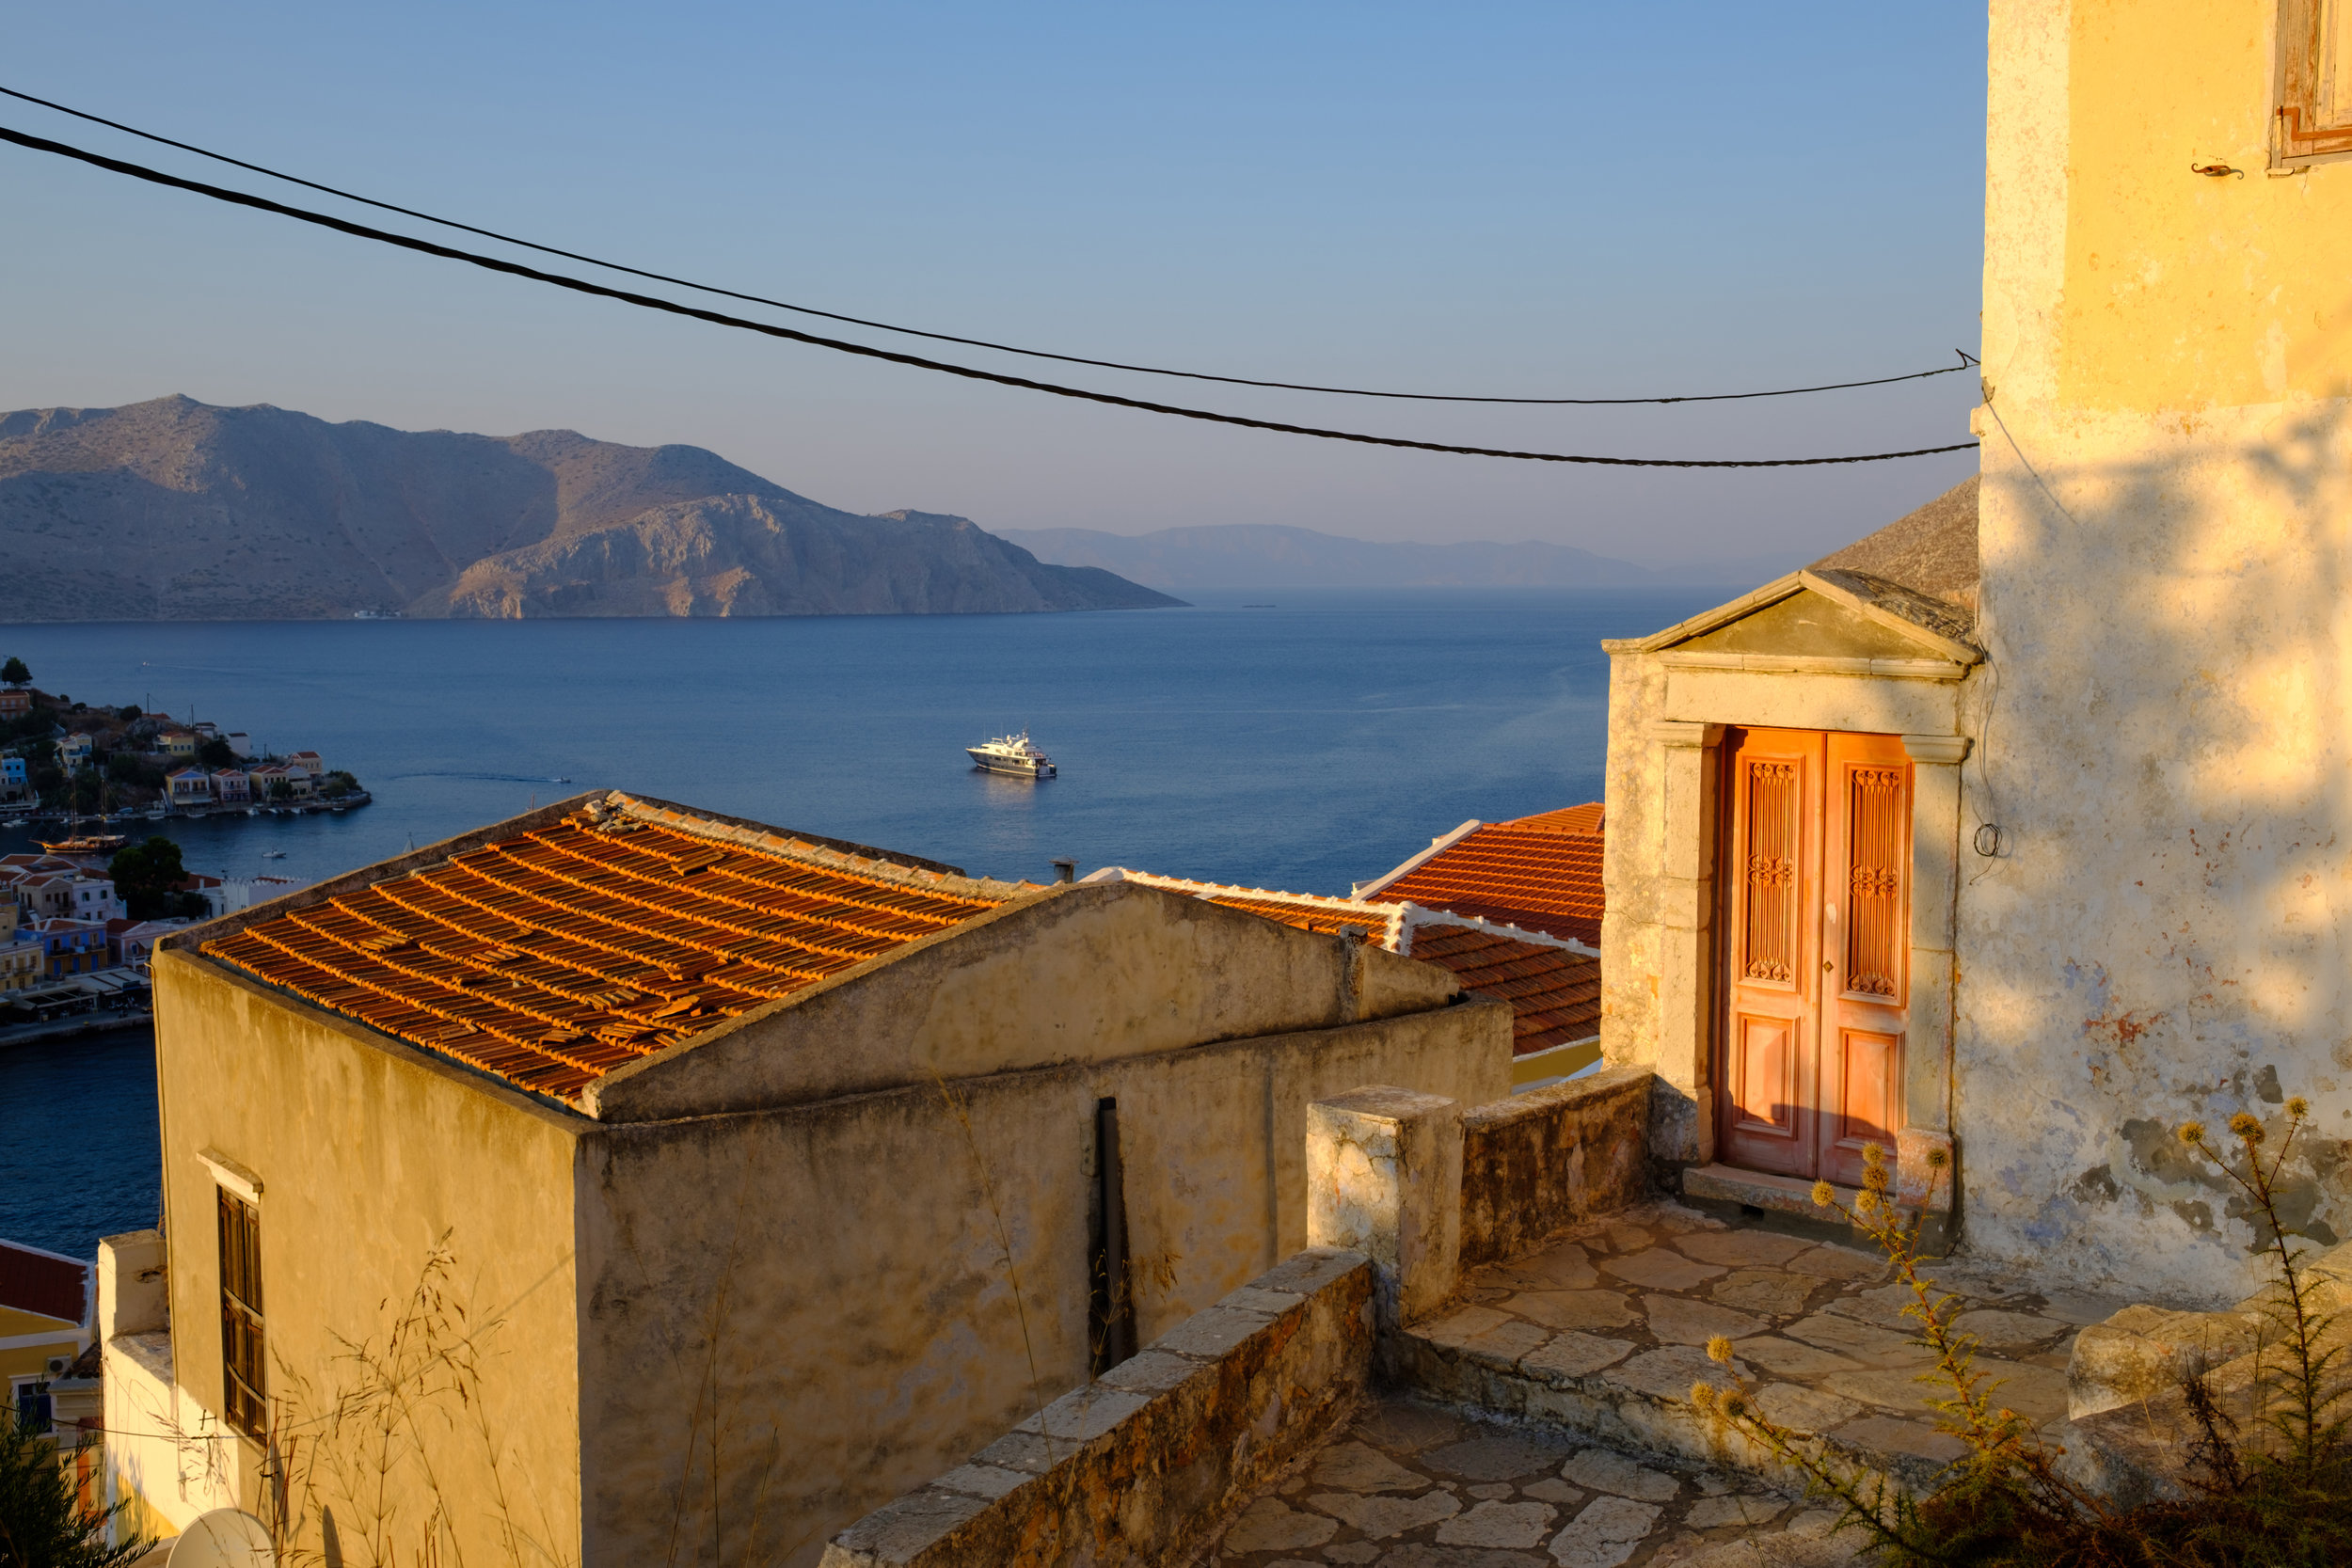 view of the ocean from the hills above symi in greece